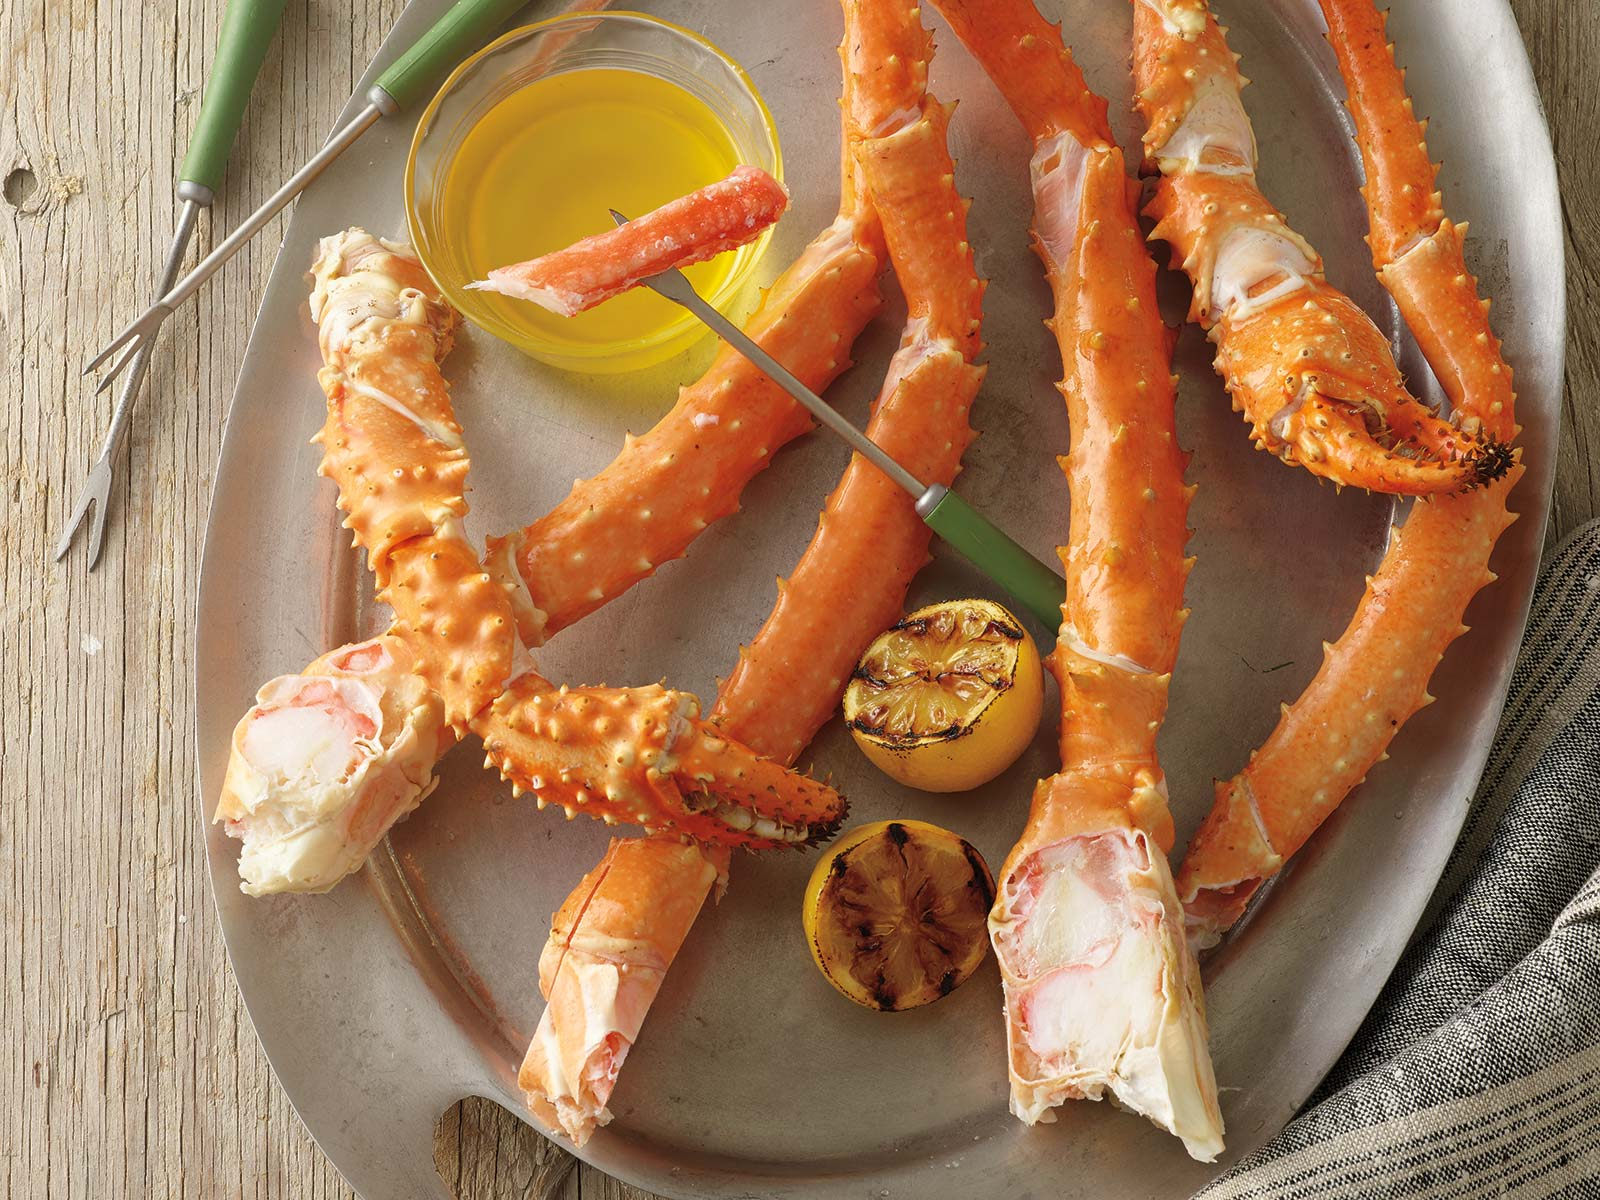 Alaska Golden King Crab Legs & Claws 12-14 Count (1/20 lb) 418146